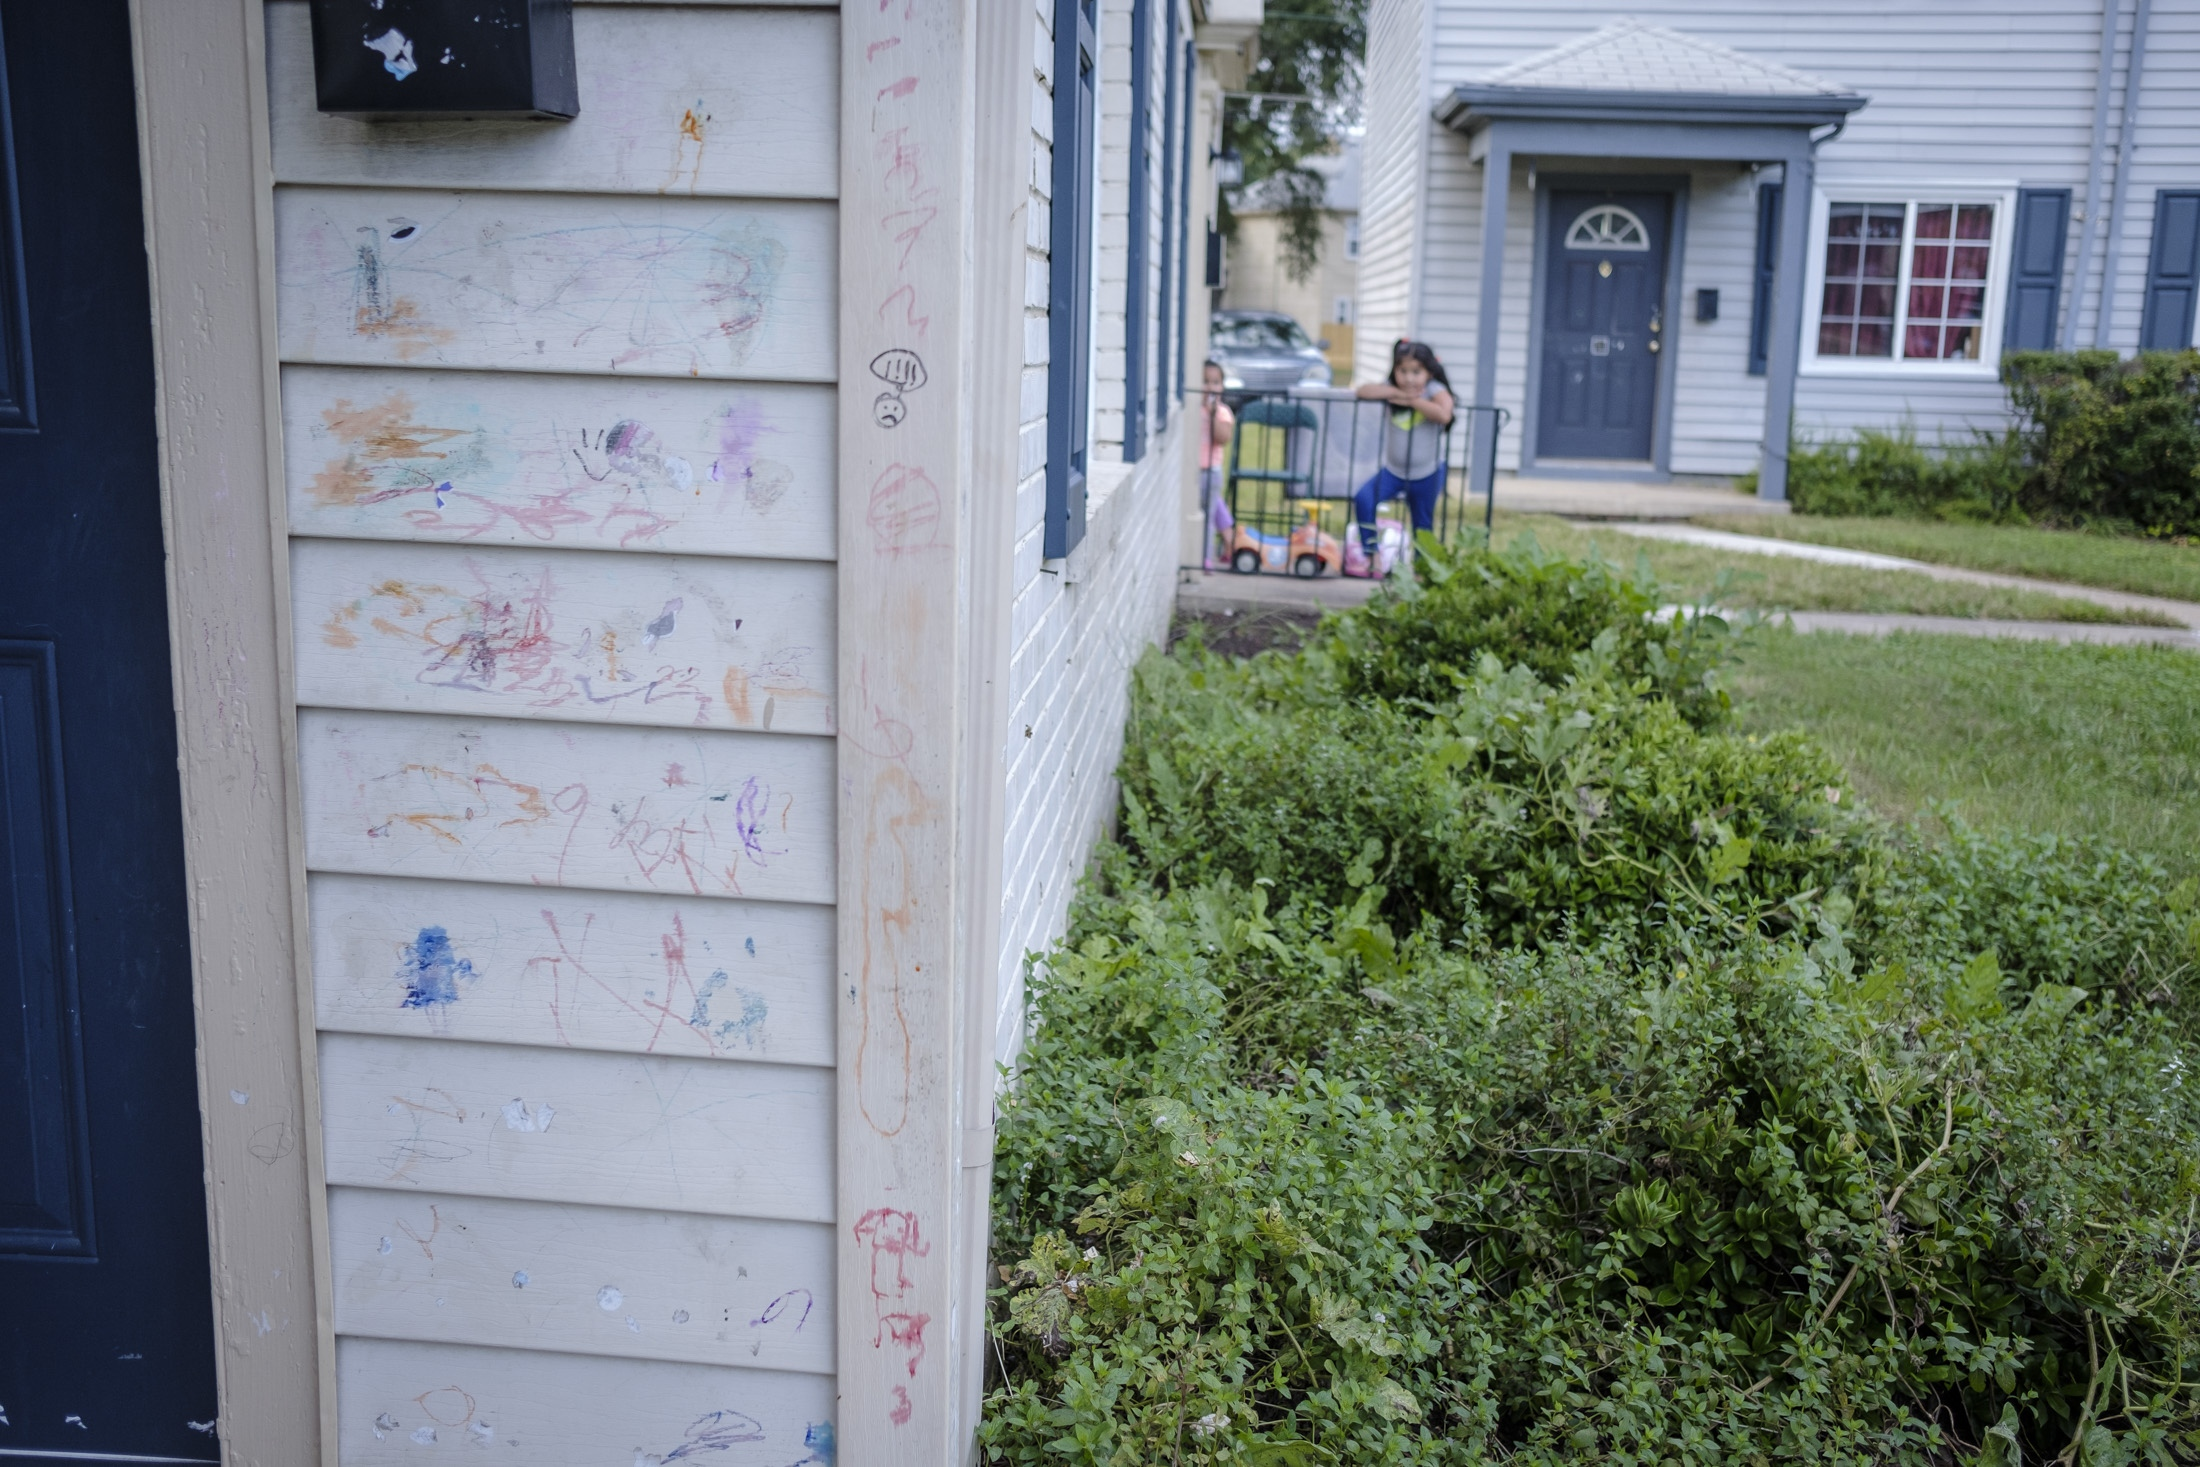 Some drawings that kids in the neighborhood drew in the walls of Maria's last home before she left to the sanctuary.